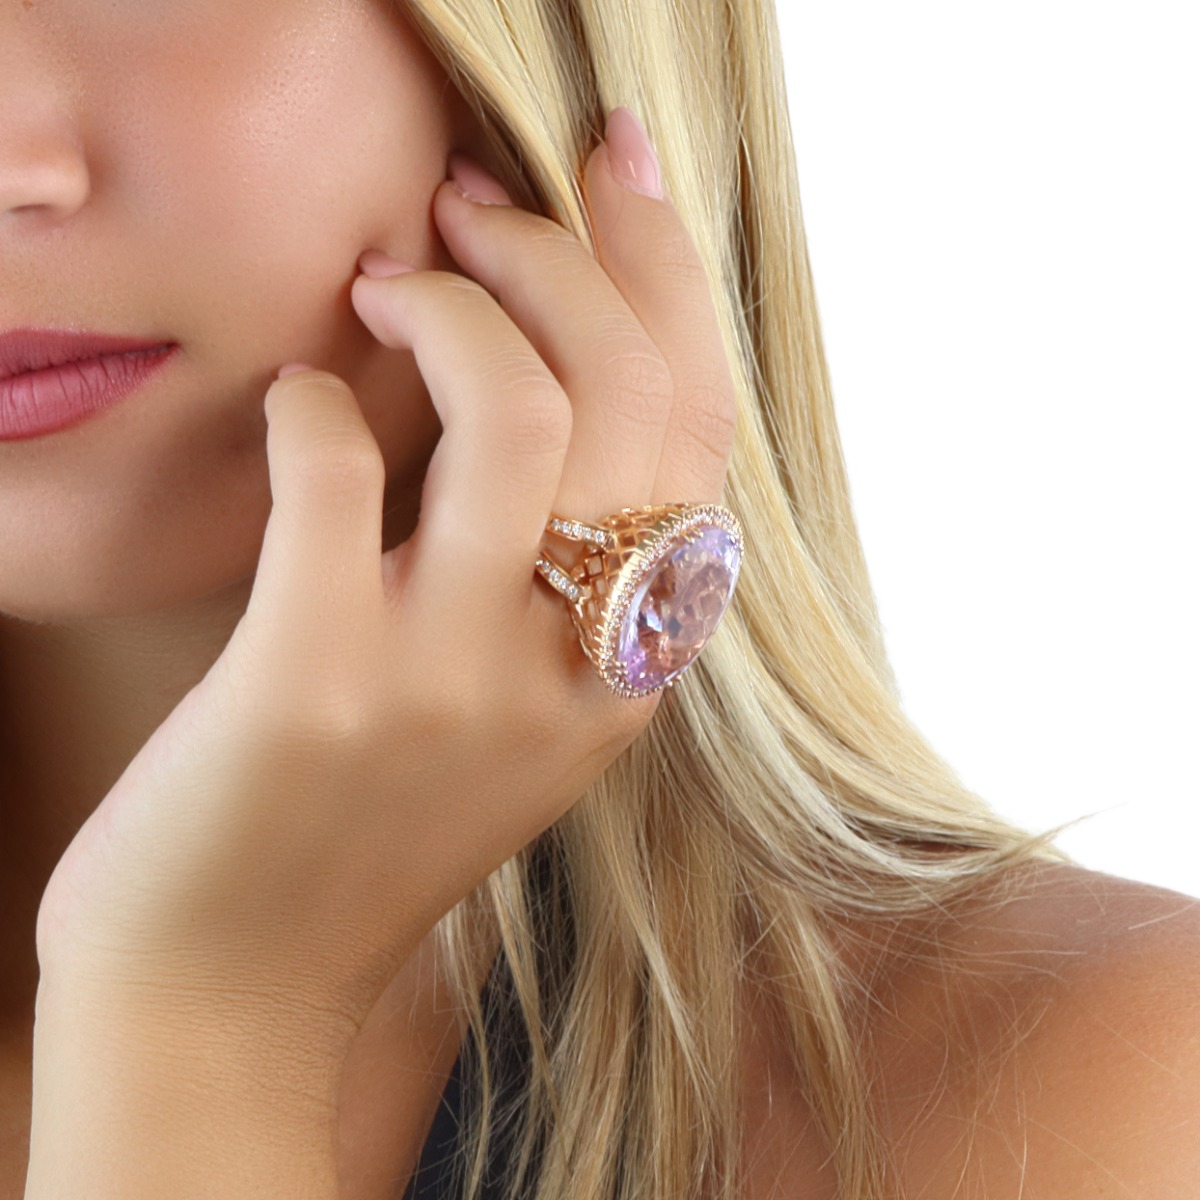 Oval Amethyst Ring with Diamond Halo